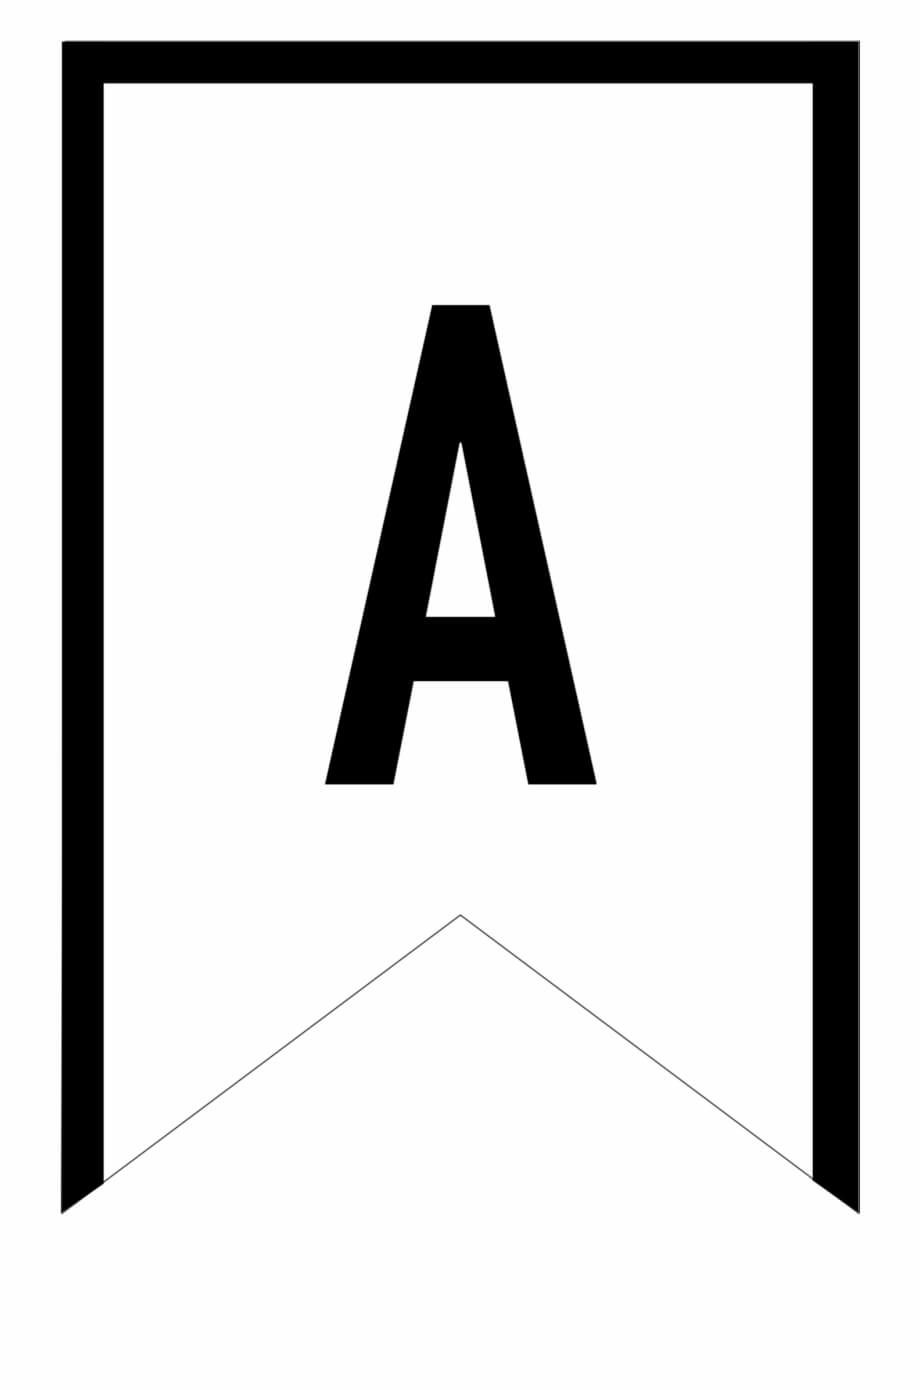 Banner Templates Free Printable Abc Letters - Printable With Regard To Printable Letter Templates For Banners